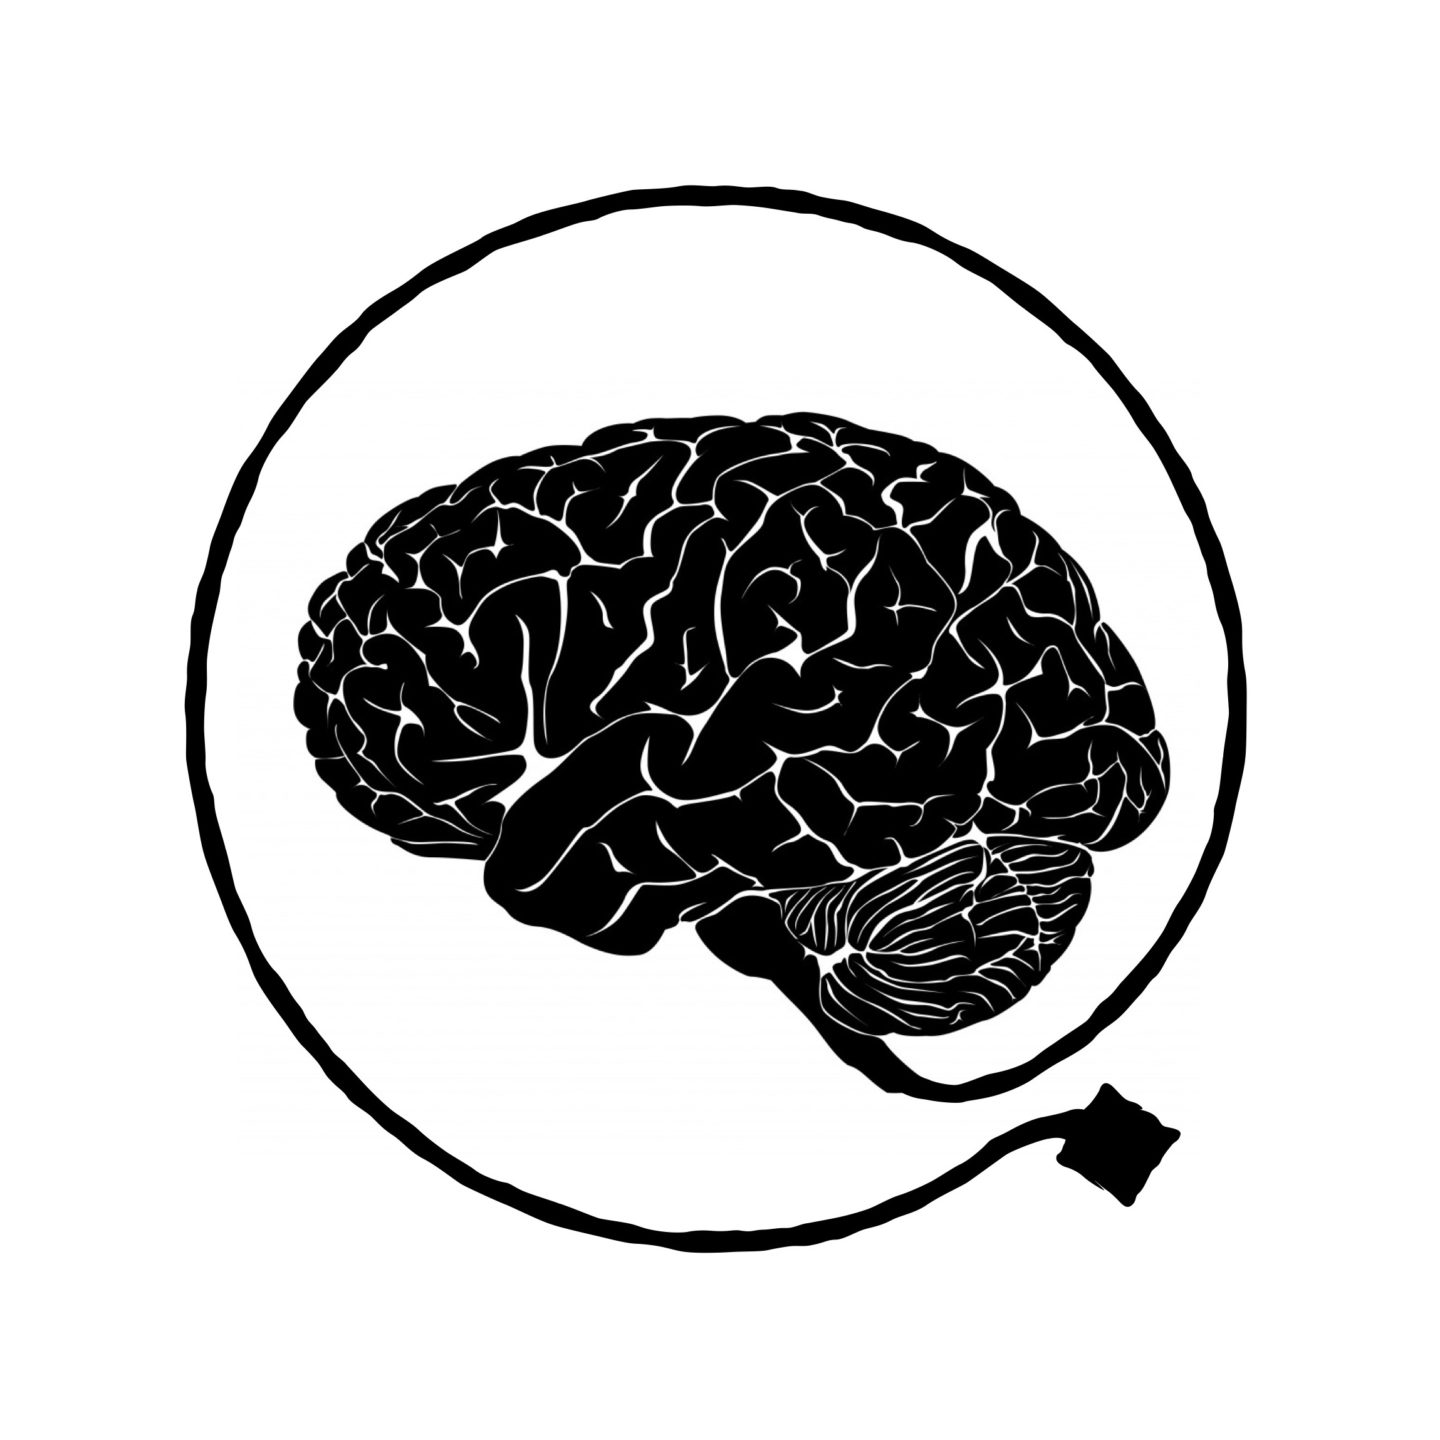 Call for Papers: The Second Annual Minds Online Conference